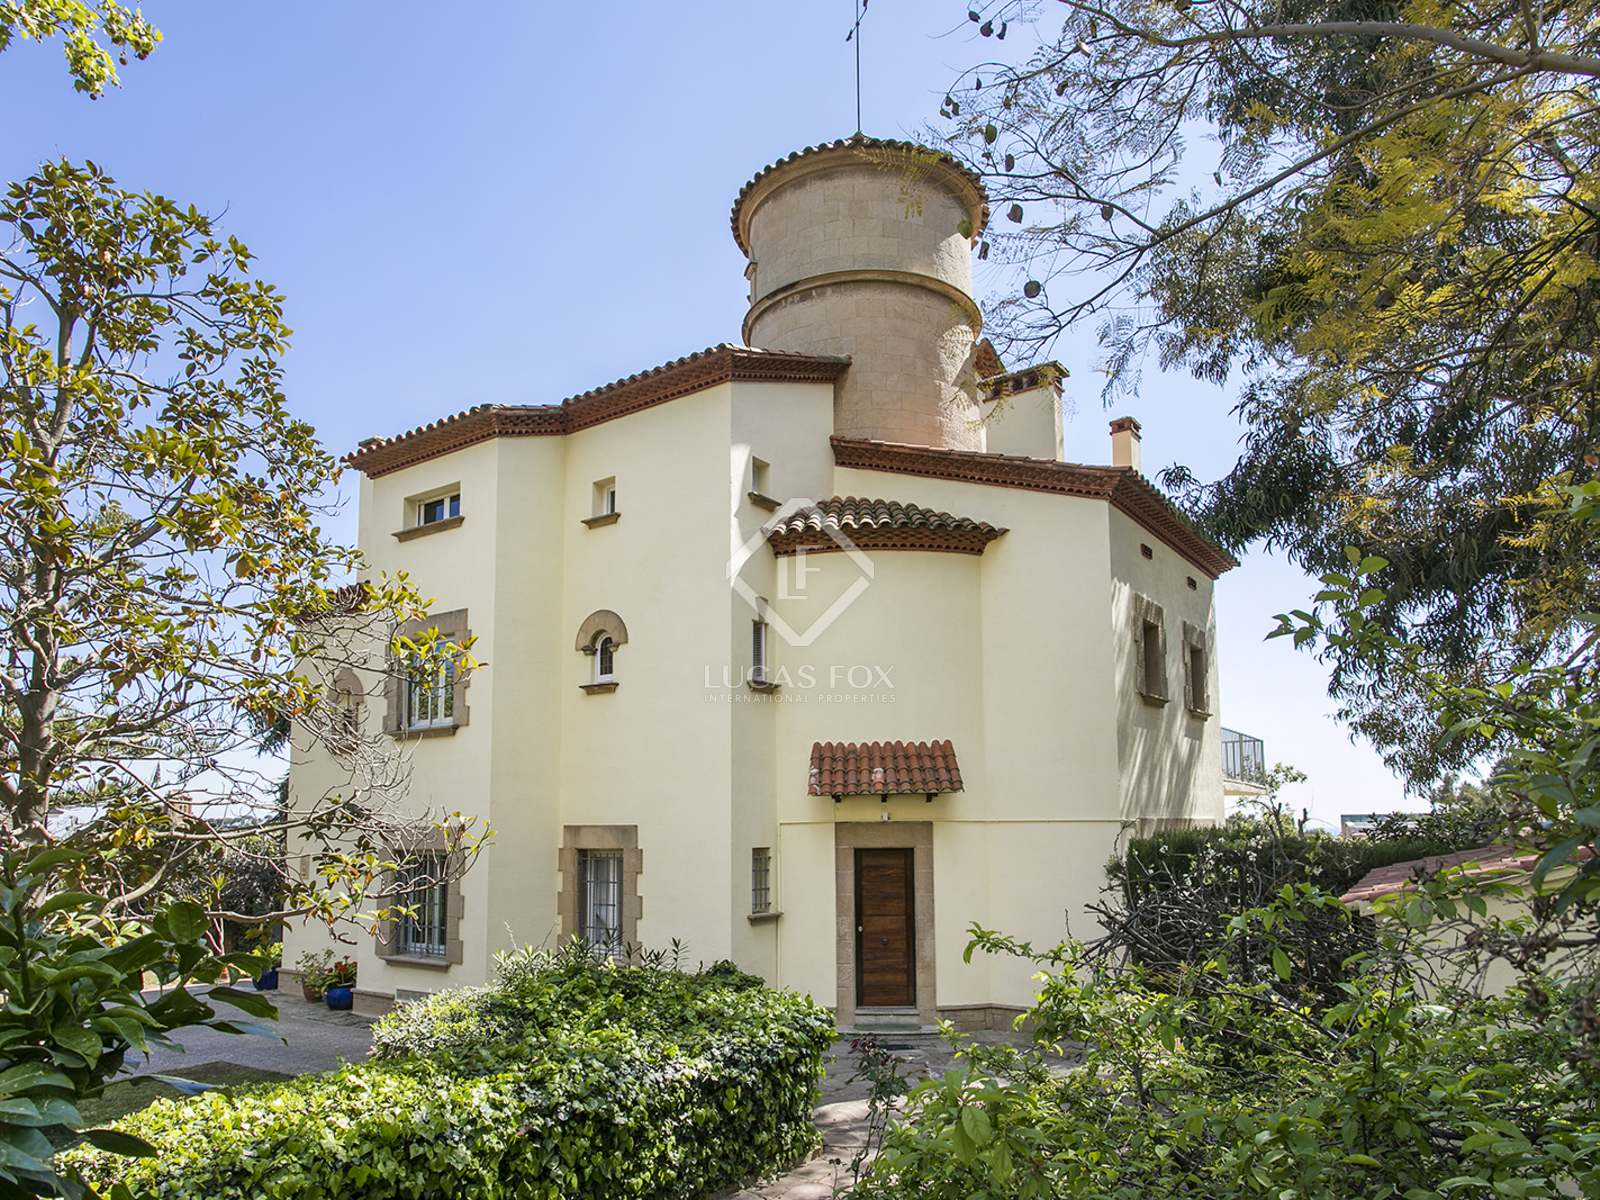 Image of the property